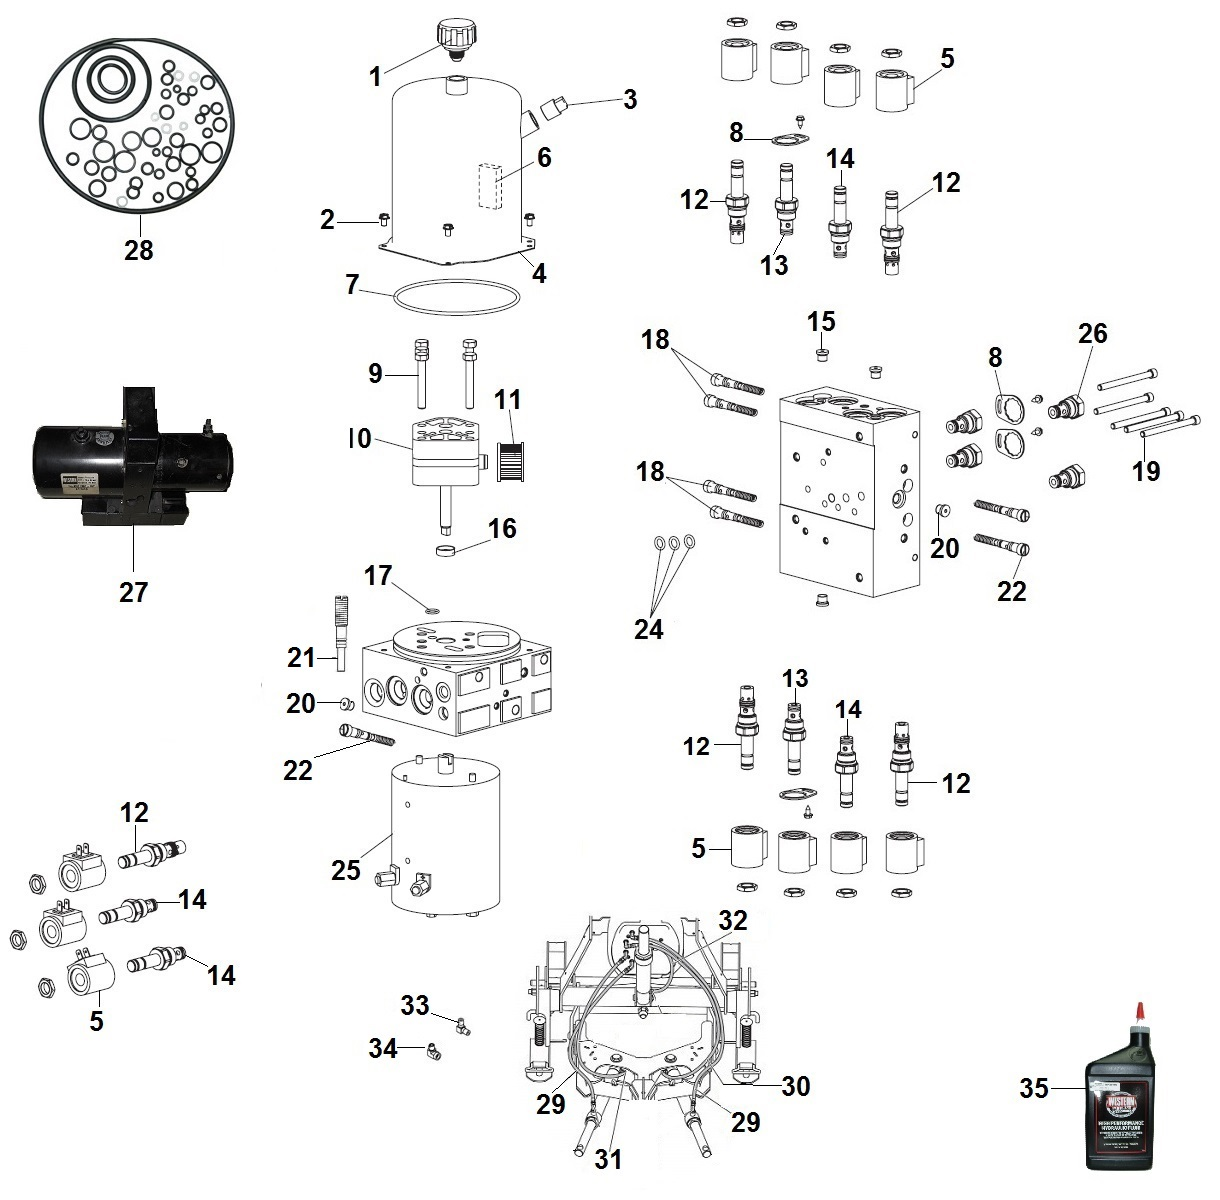 Western Ultra Mount MVP Plus Parts Diagram / Schematic